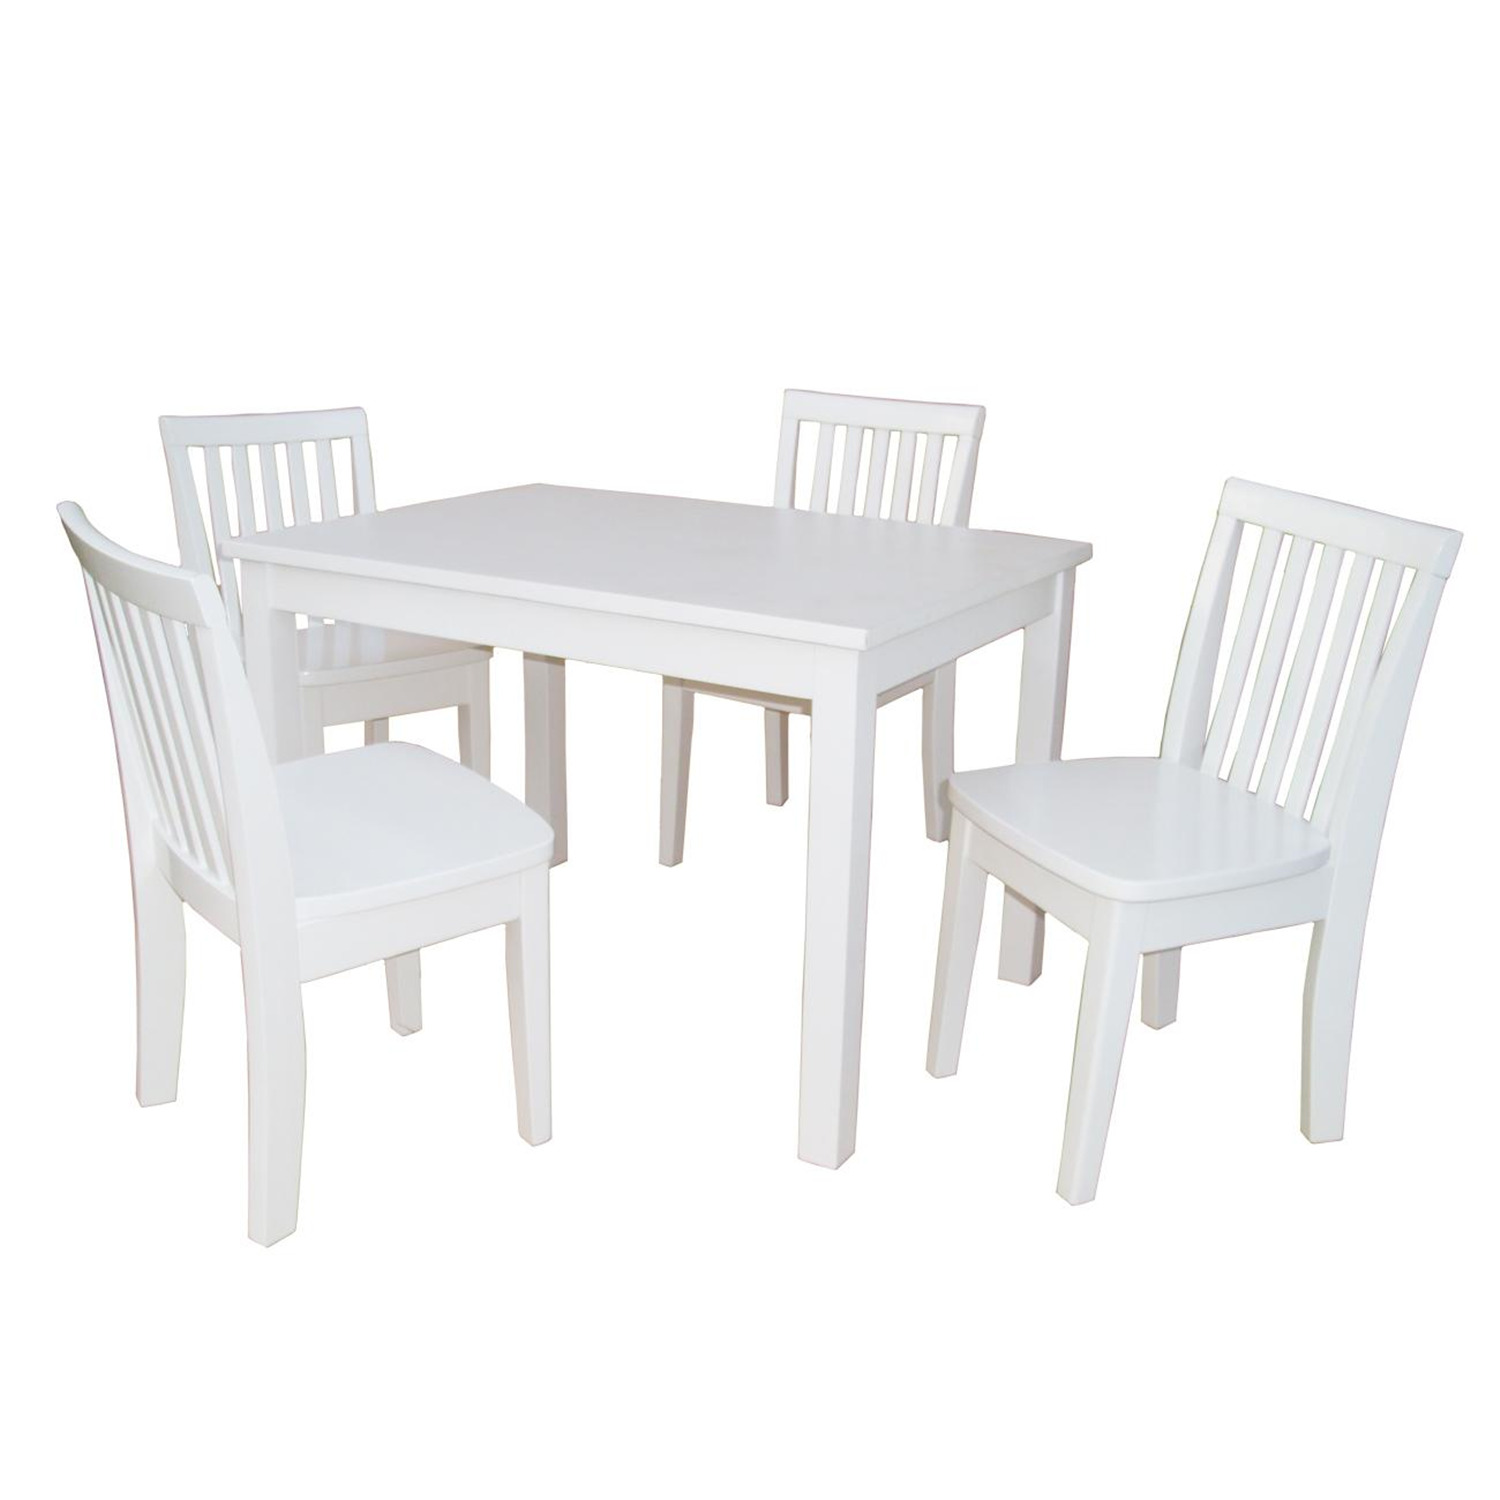 International Concepts Mission Juvenile Table Set with 4